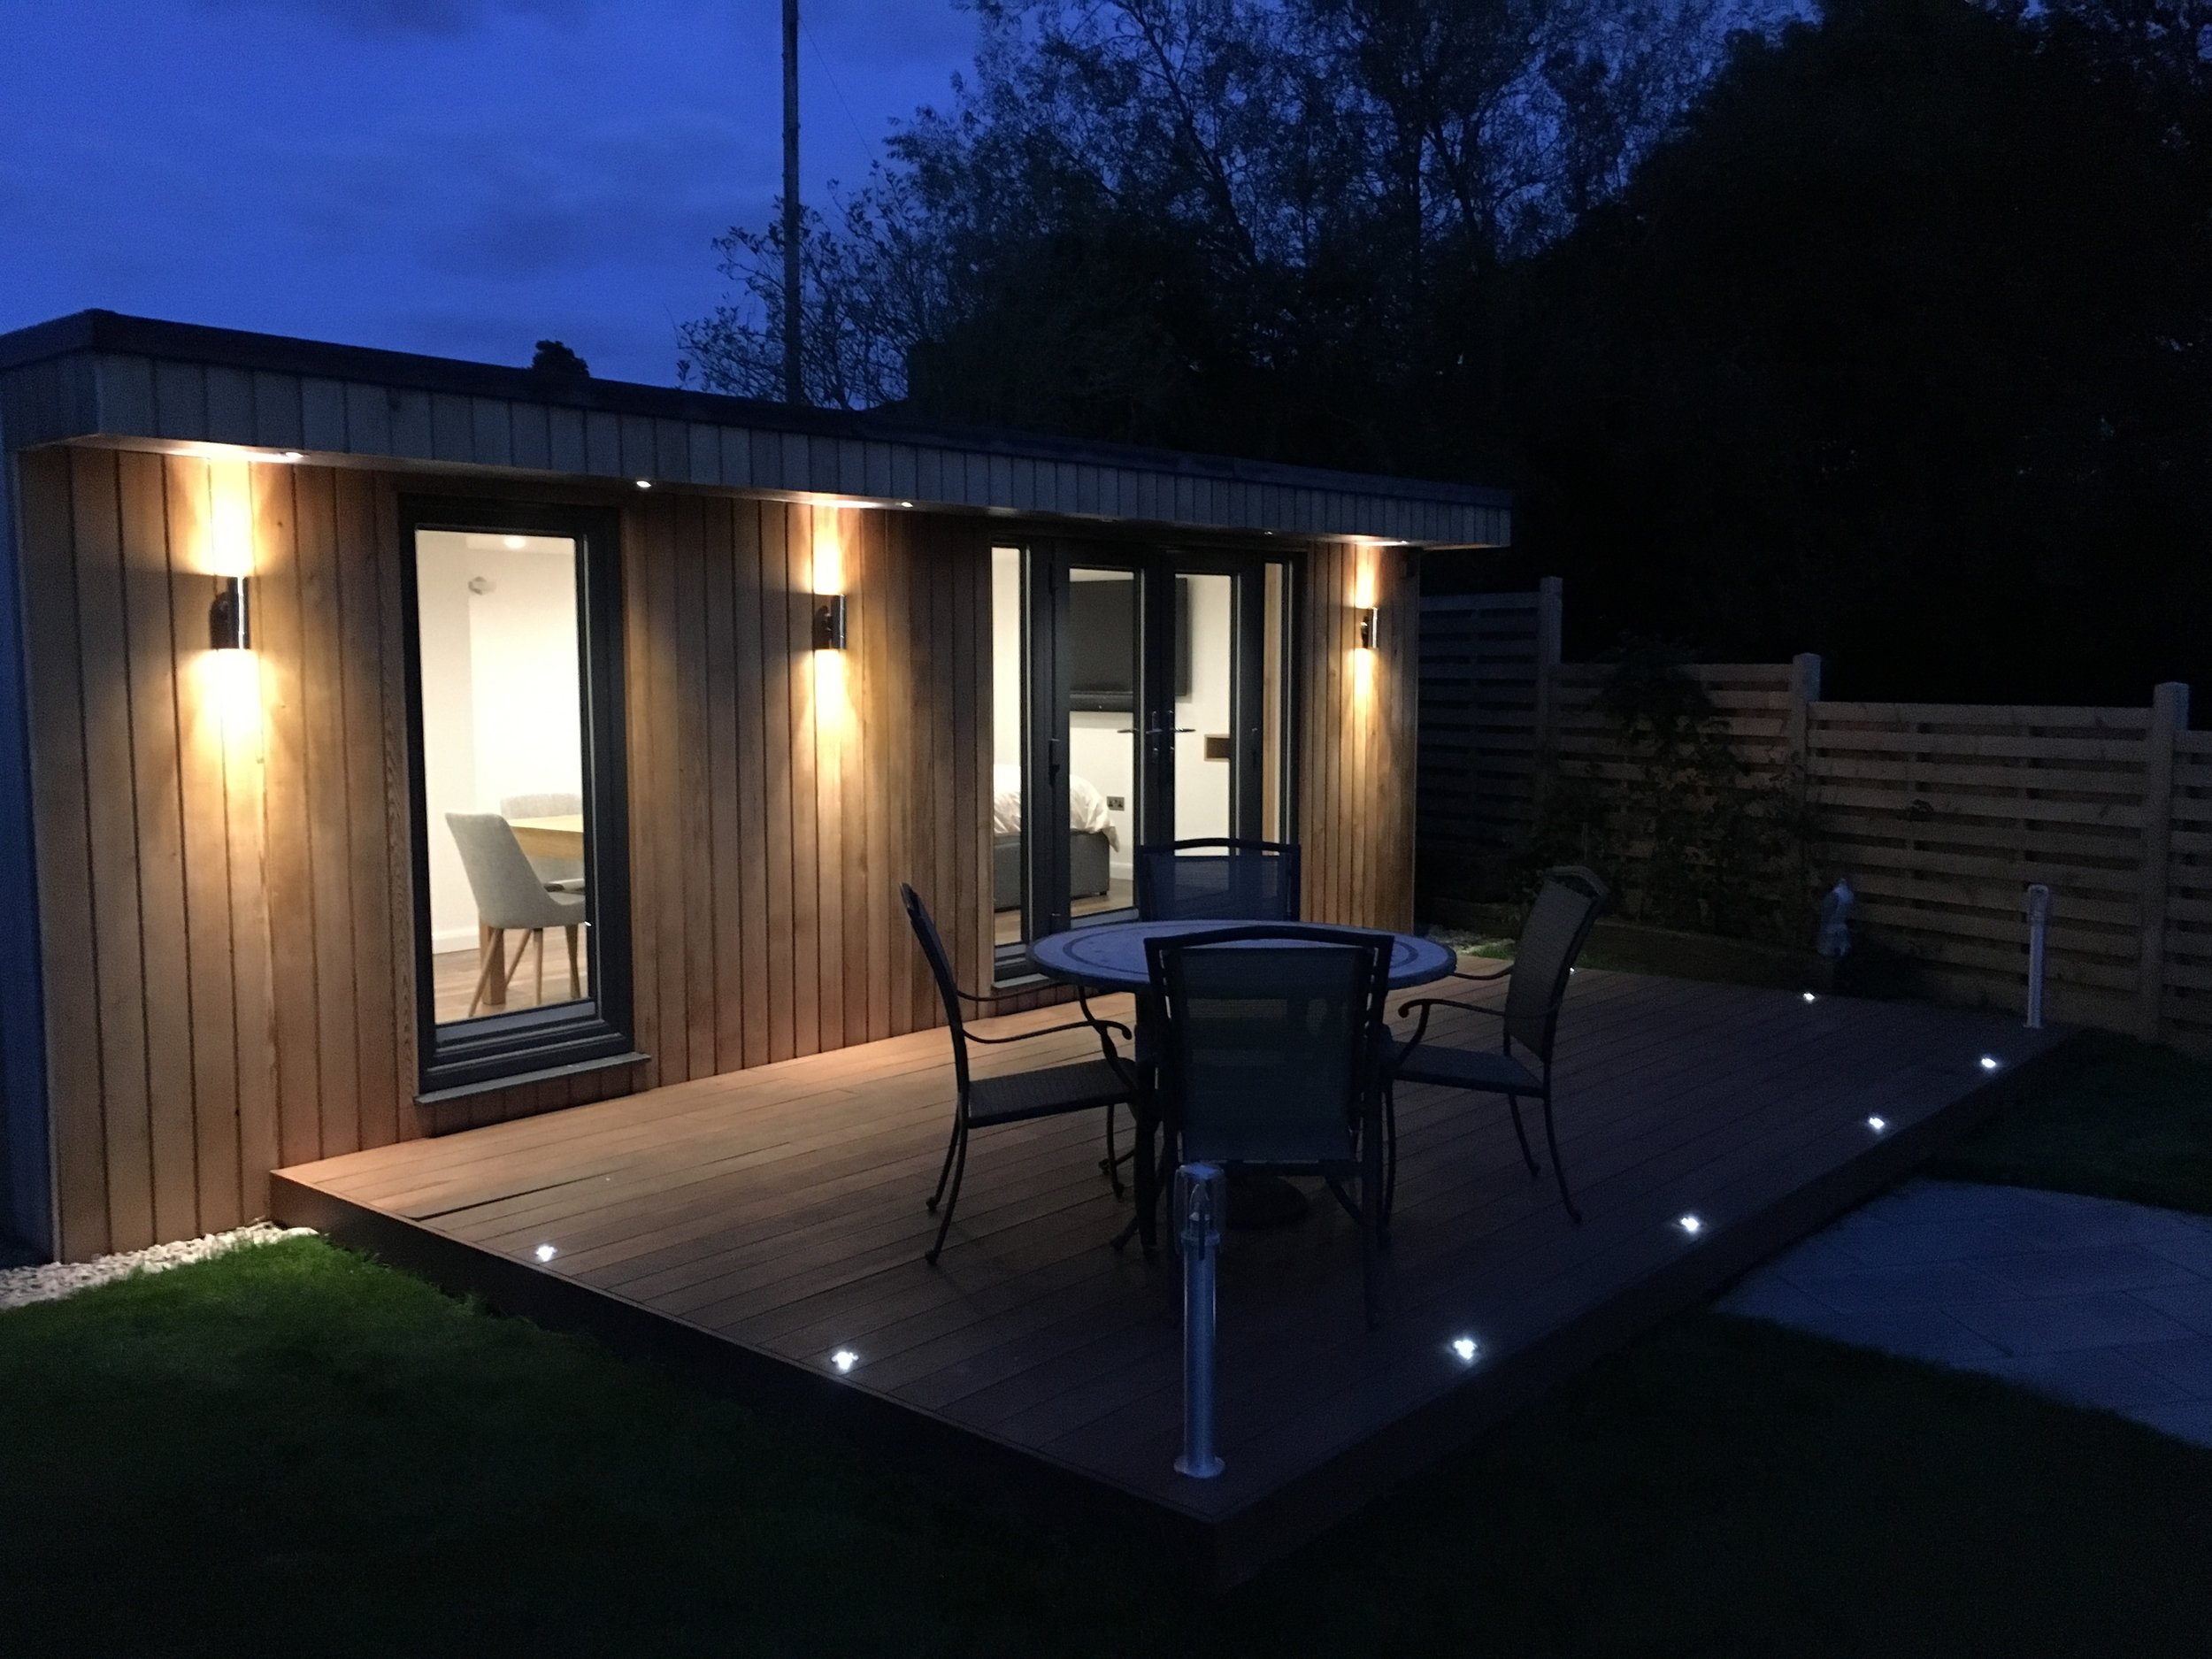 Available budget and internal space - Our online 3D configurator lets you explore different garden room sizes, together with options for cladding, windows and doors and finishing specifications, all displayed with upfront prices. You can explore many different garden room sizes and configure a solution to suit your available space, internal usage needs and available budget.